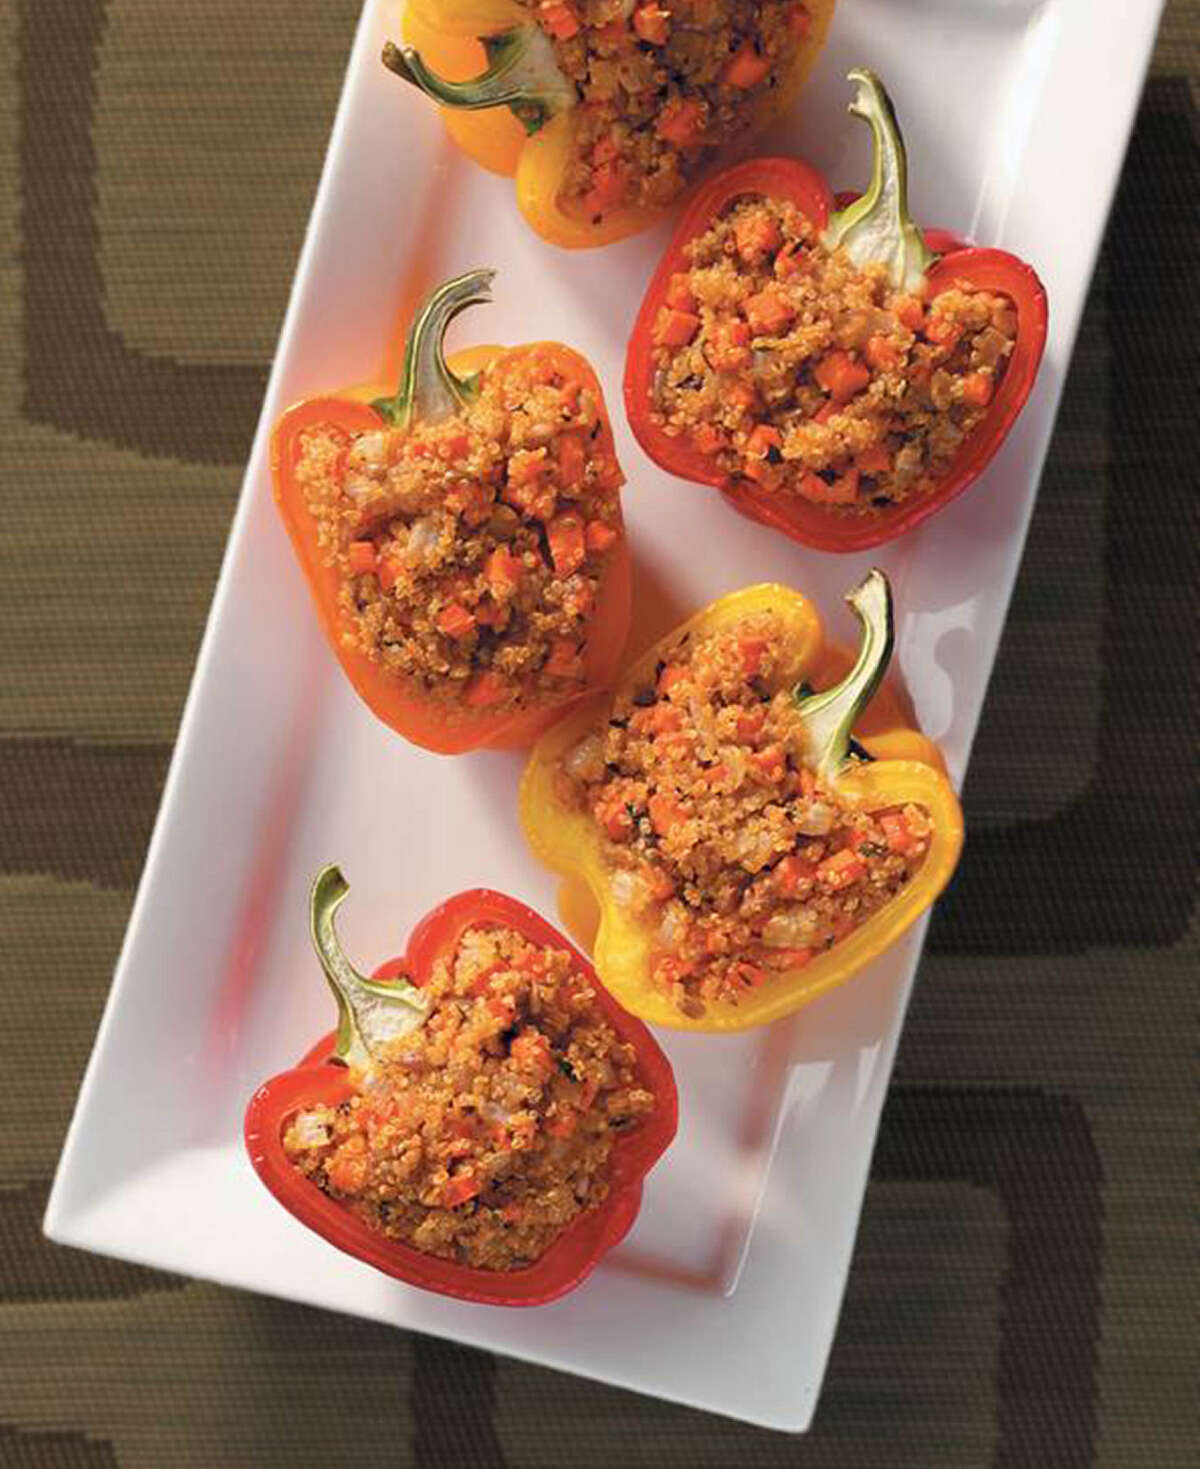 Quinoa can replace hamburger meat in stuffed peppers.